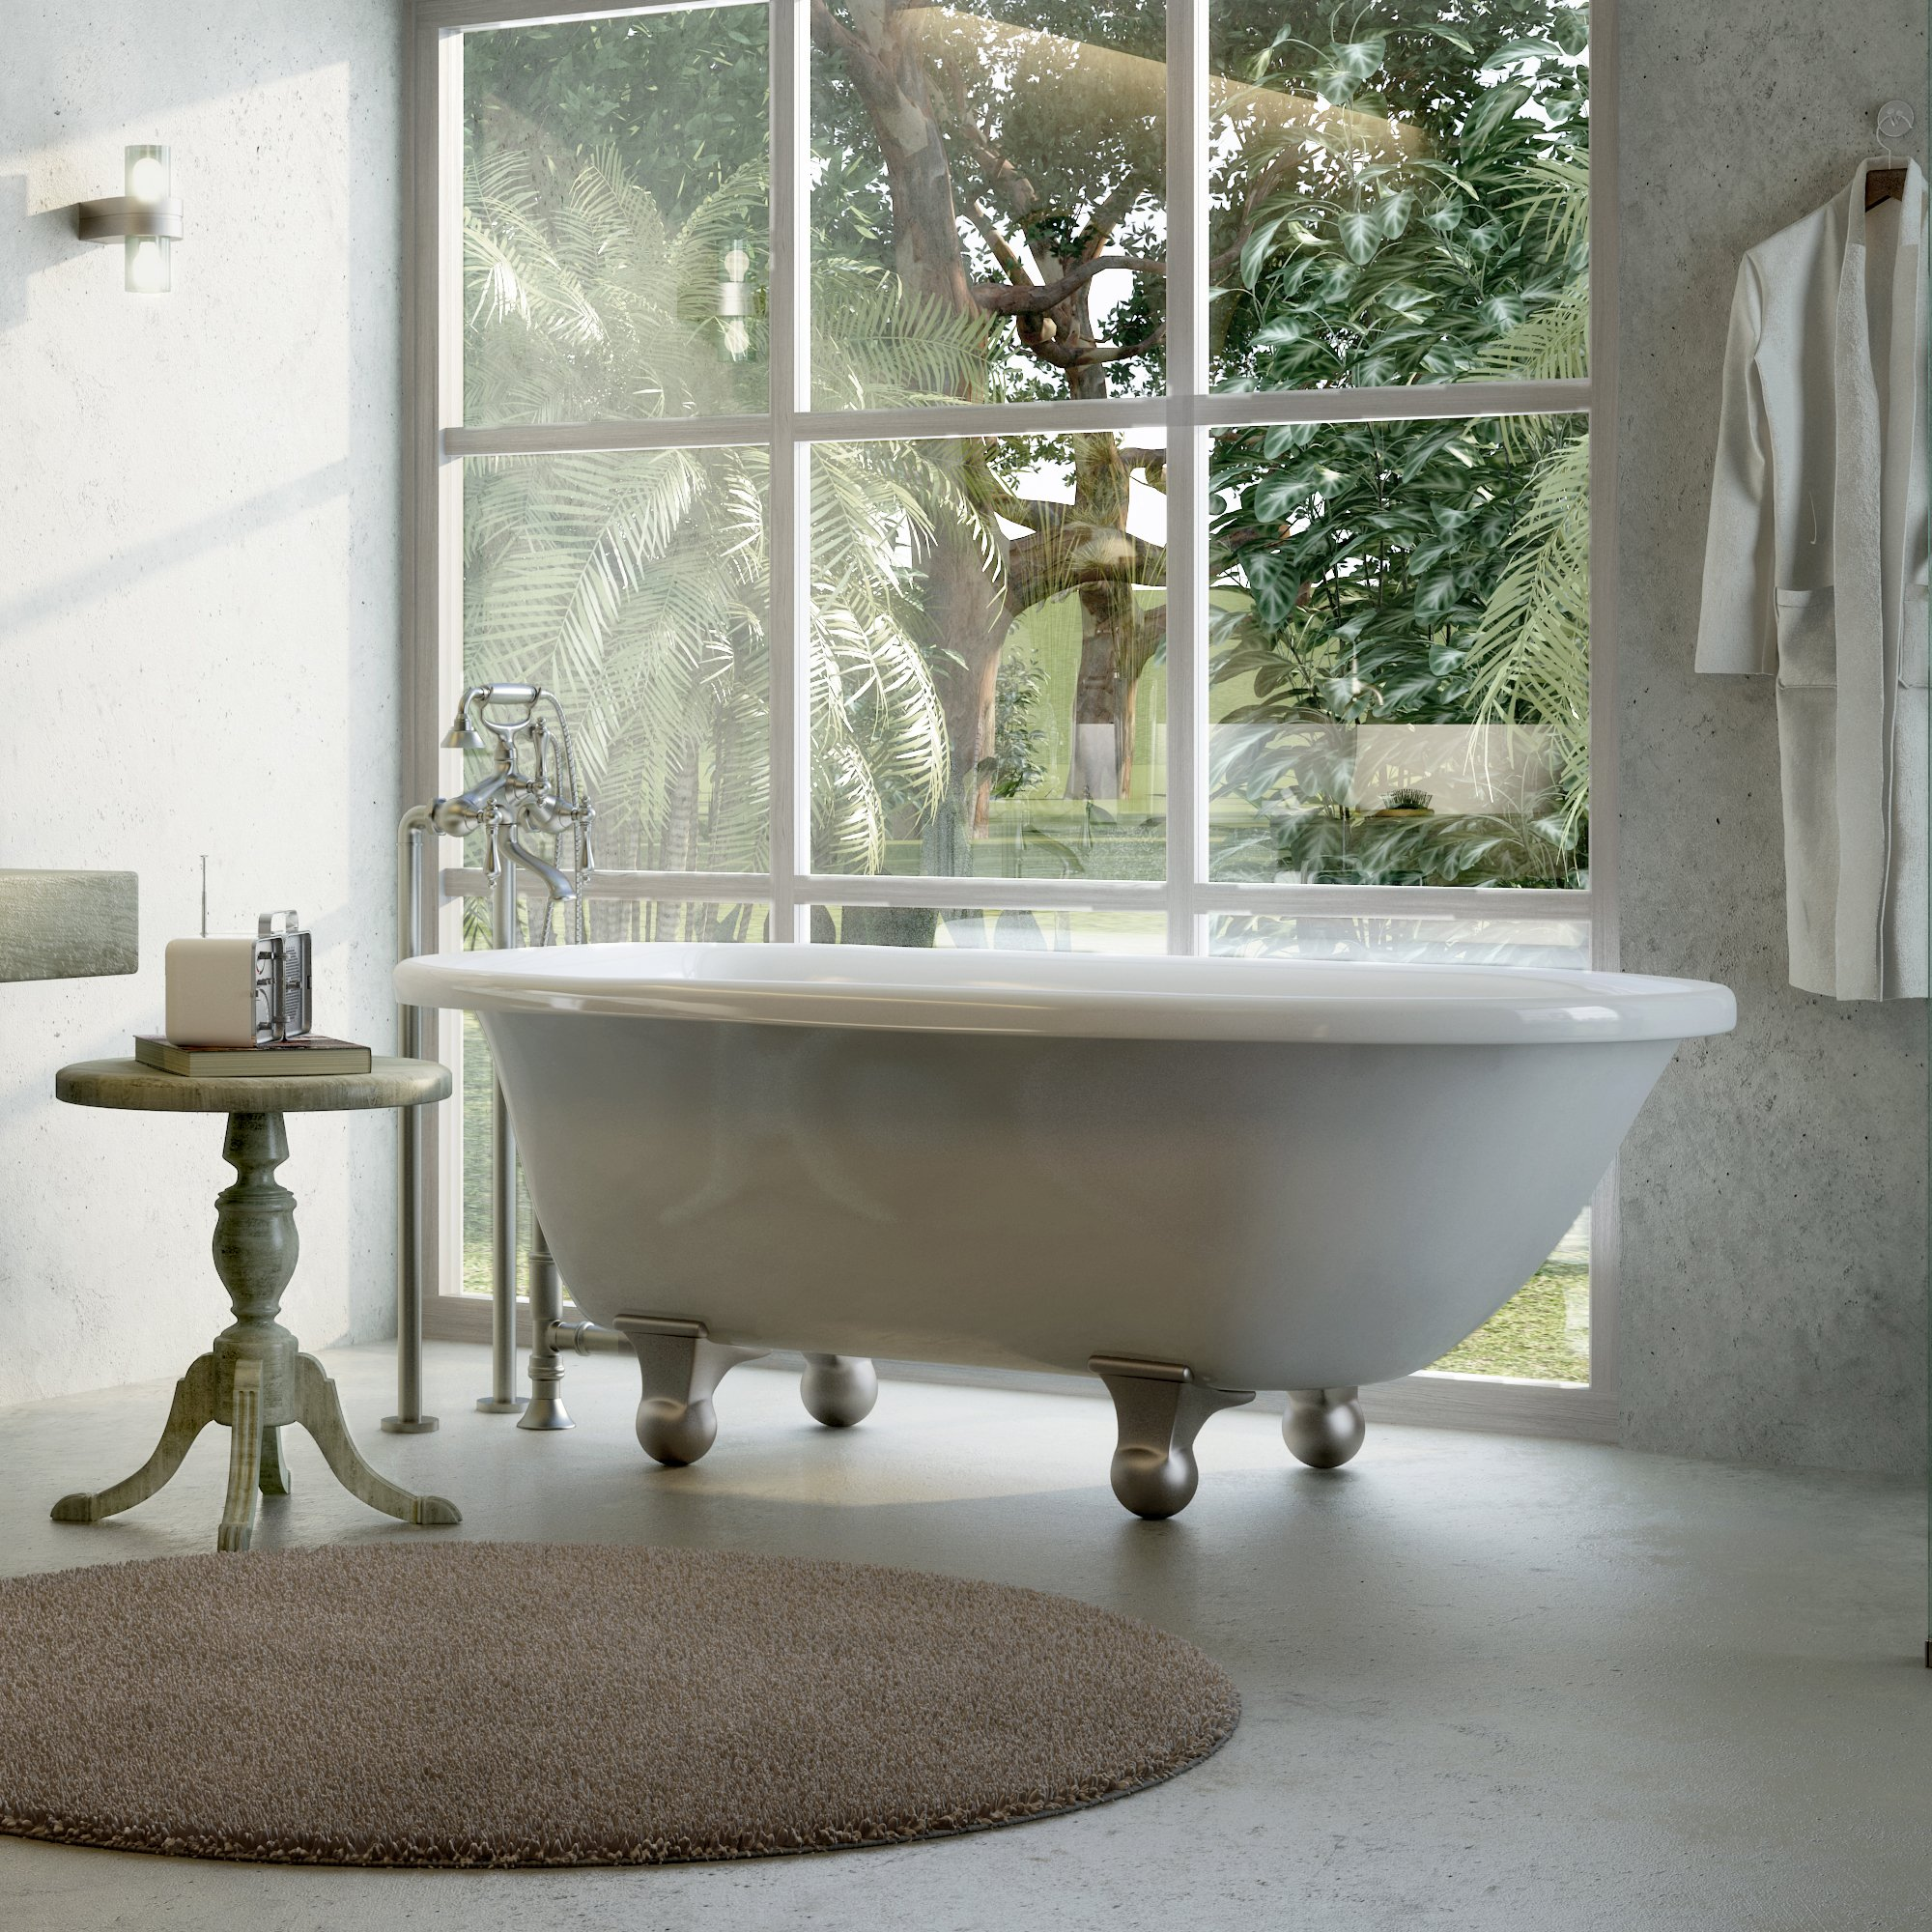 Luxury 60 inch Modern Clawfoot Tub in White with Stand-Alone Freestanding Tub Design, Includes Modern Brushed Nickel Cannonball Feet and Drain, From The Laughlin Collection